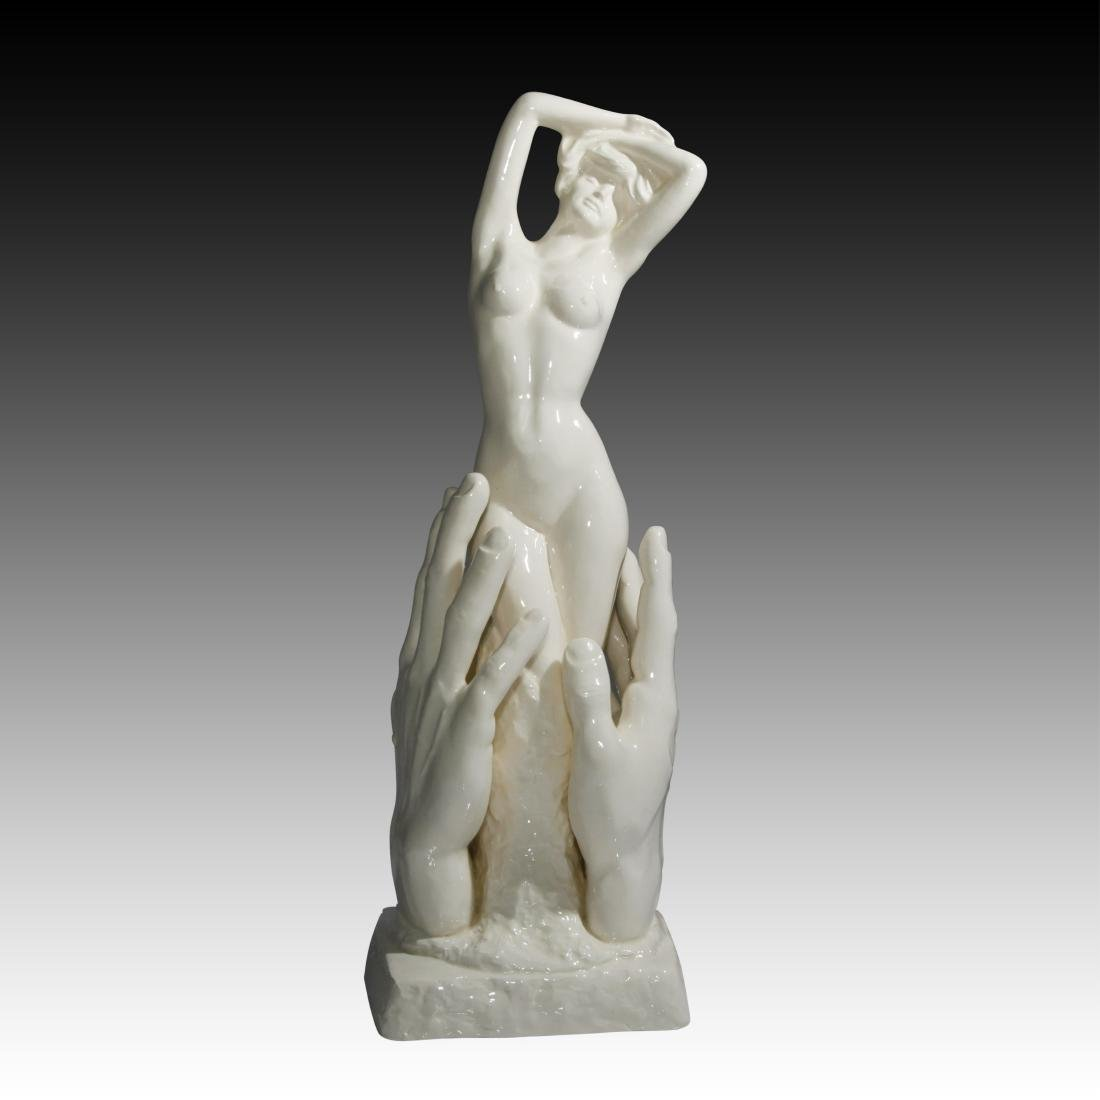 Nude Young Woman In Between Hands Figurine